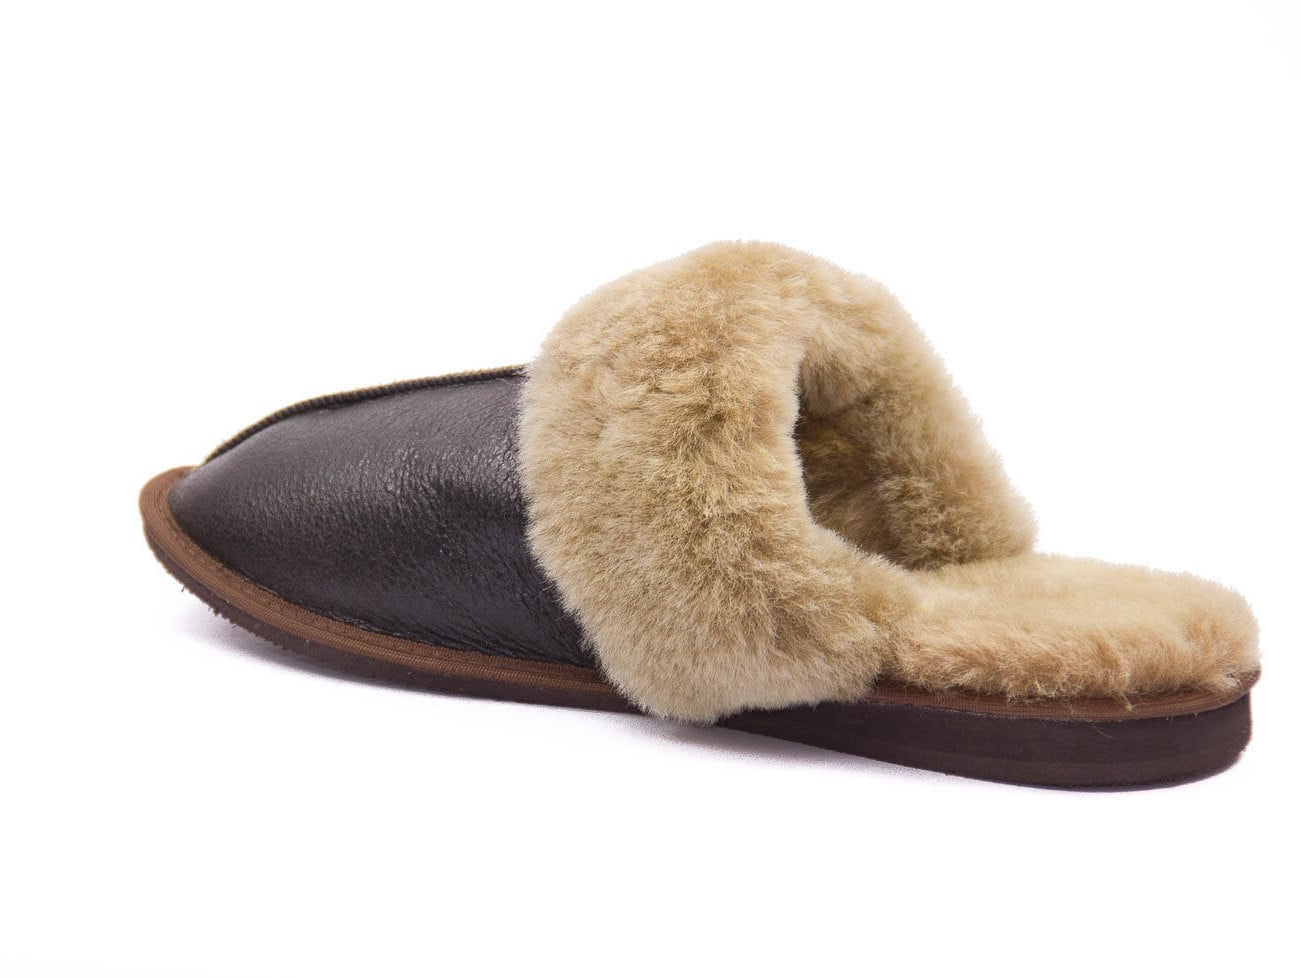 3e838d644e019 Men's leather sheepskin slippers! Really elegant and classic ! High ...